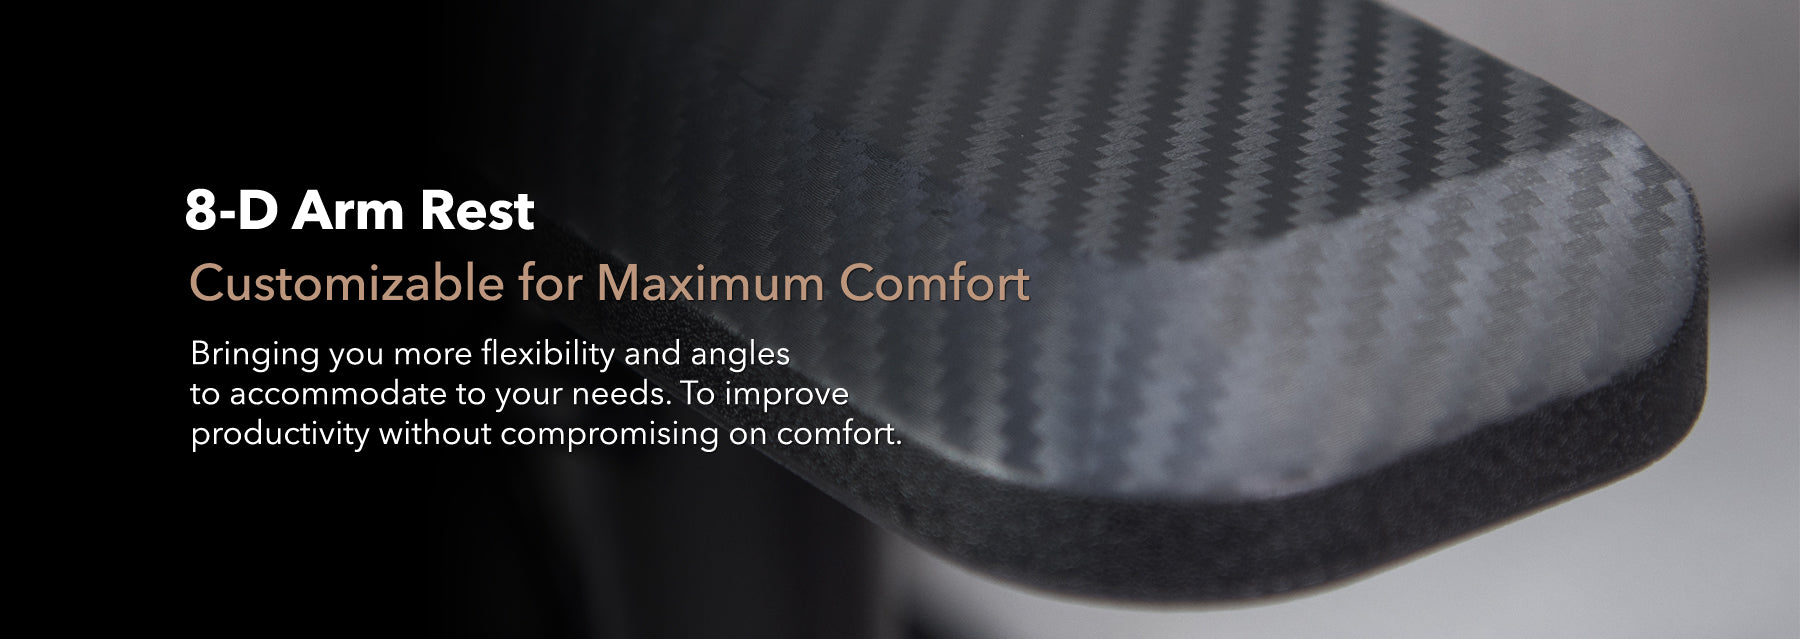 OOF Infinity Chair, gaming setup, PremiumFR, Premium Fire Retardant, Office Chair, Leather, Arm Rest